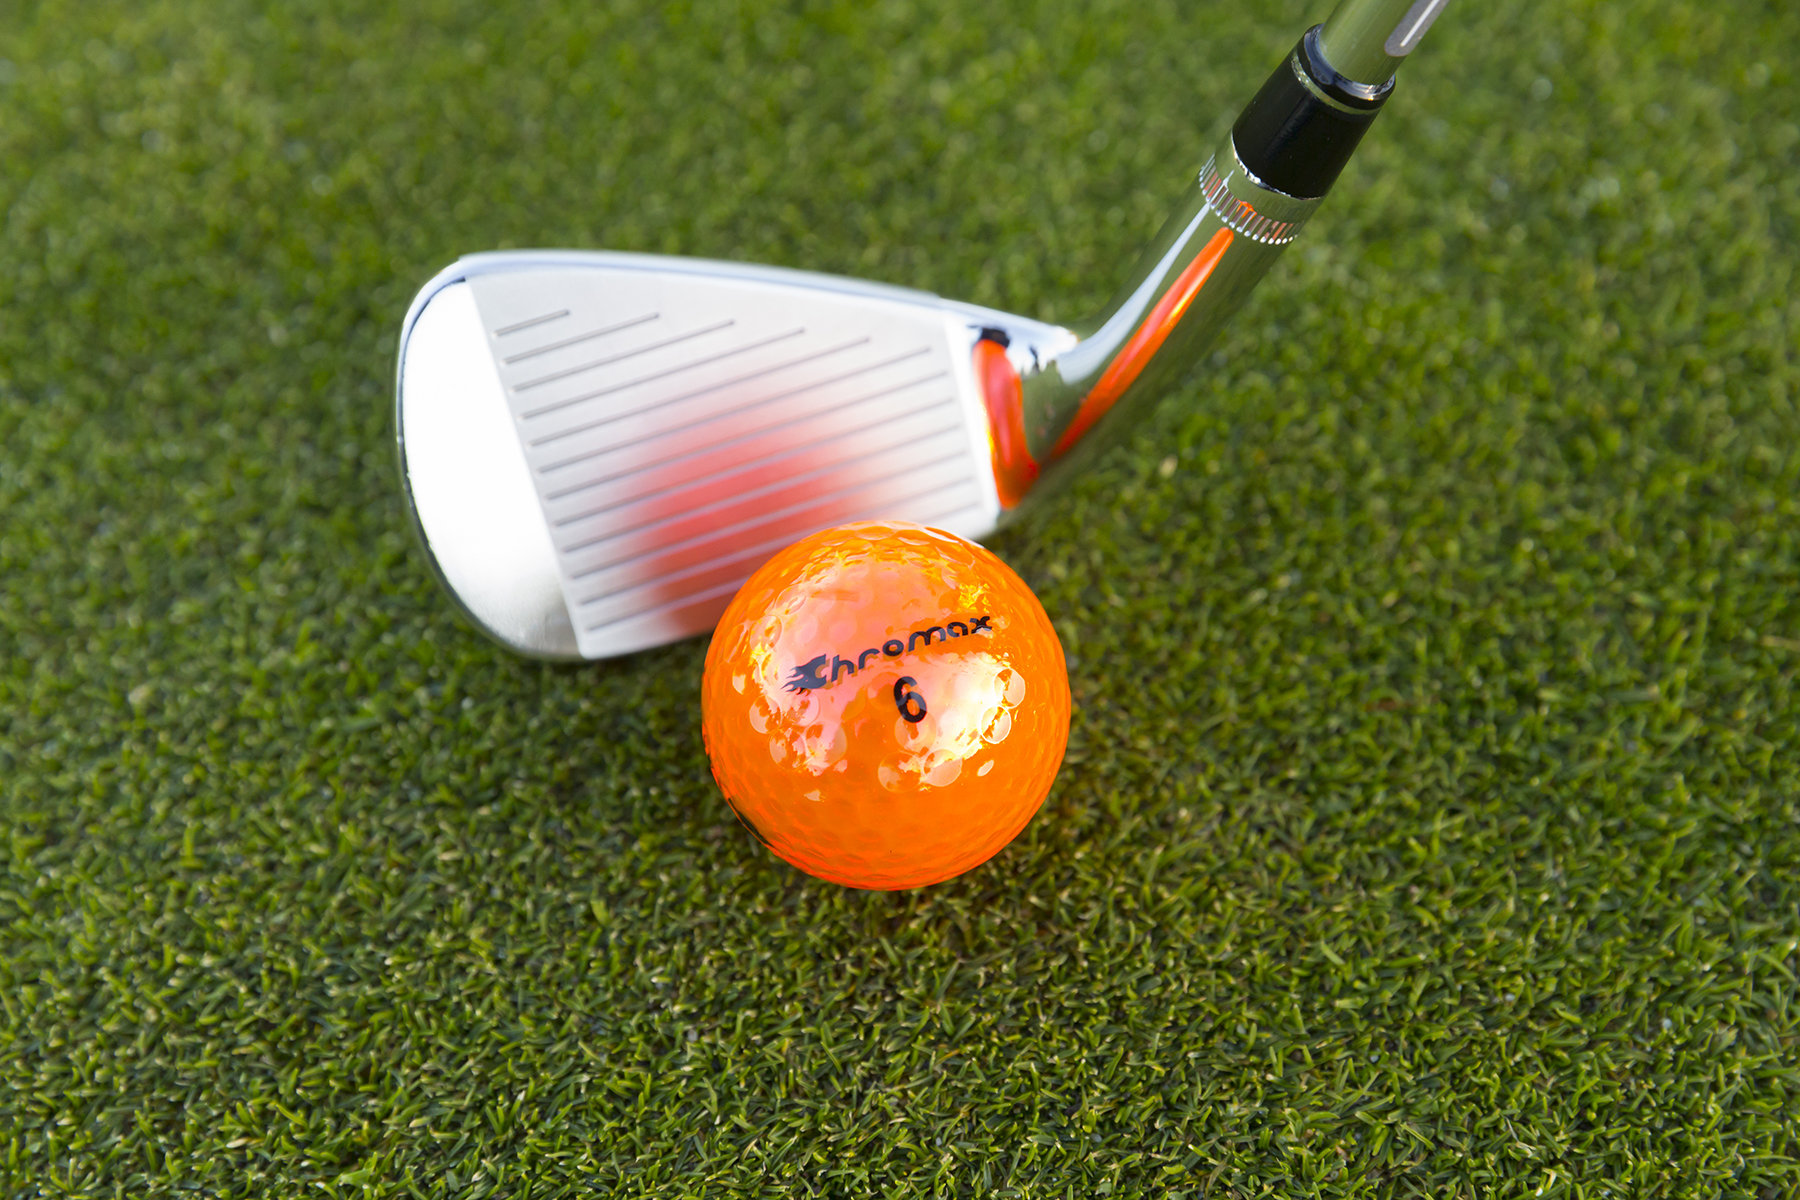 Chromax orange golf ball M5 with wedge